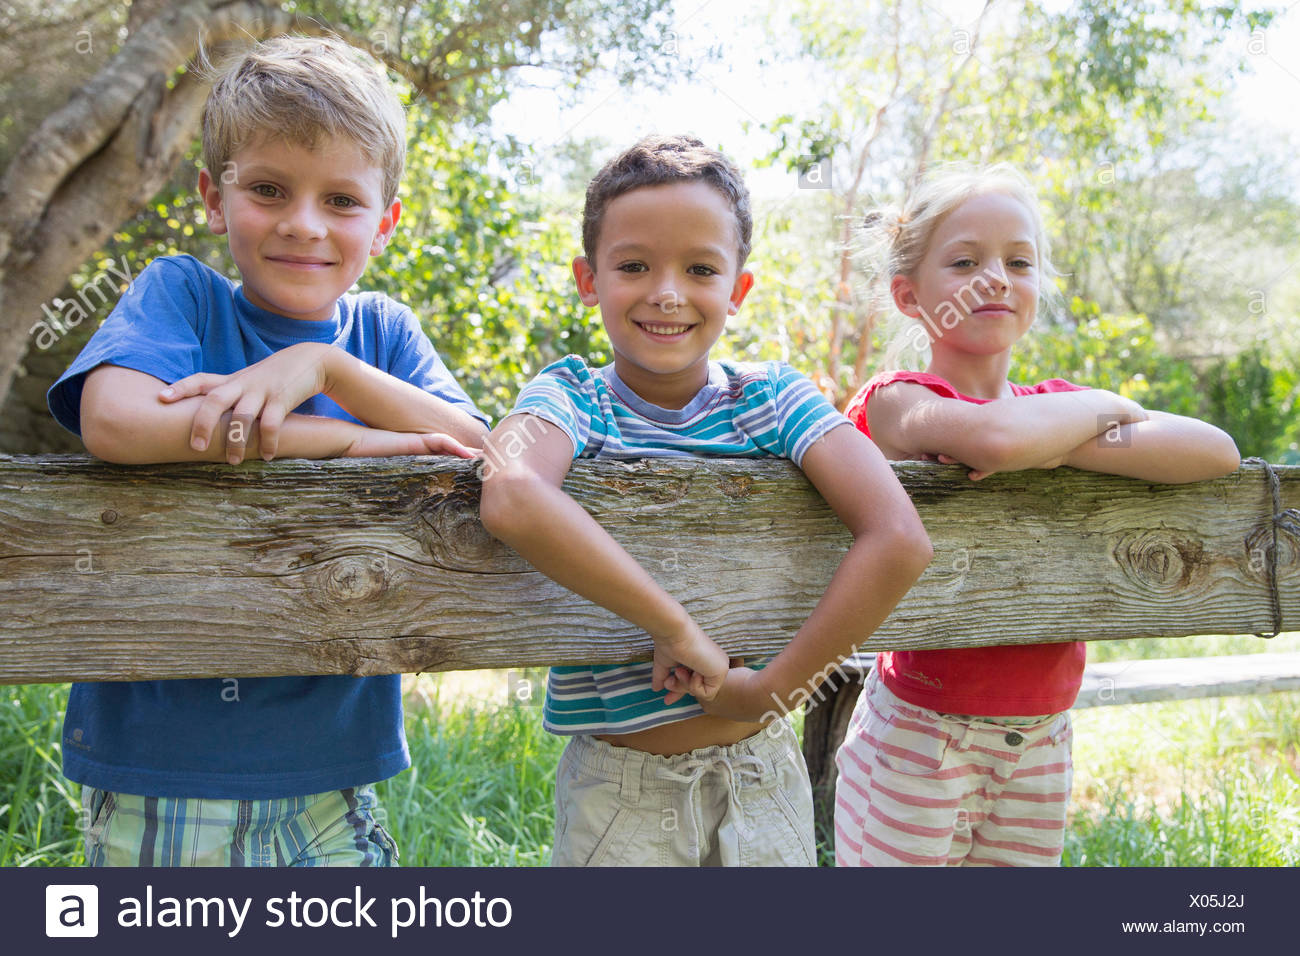 Three children in leaning over garden fence - Stock Image